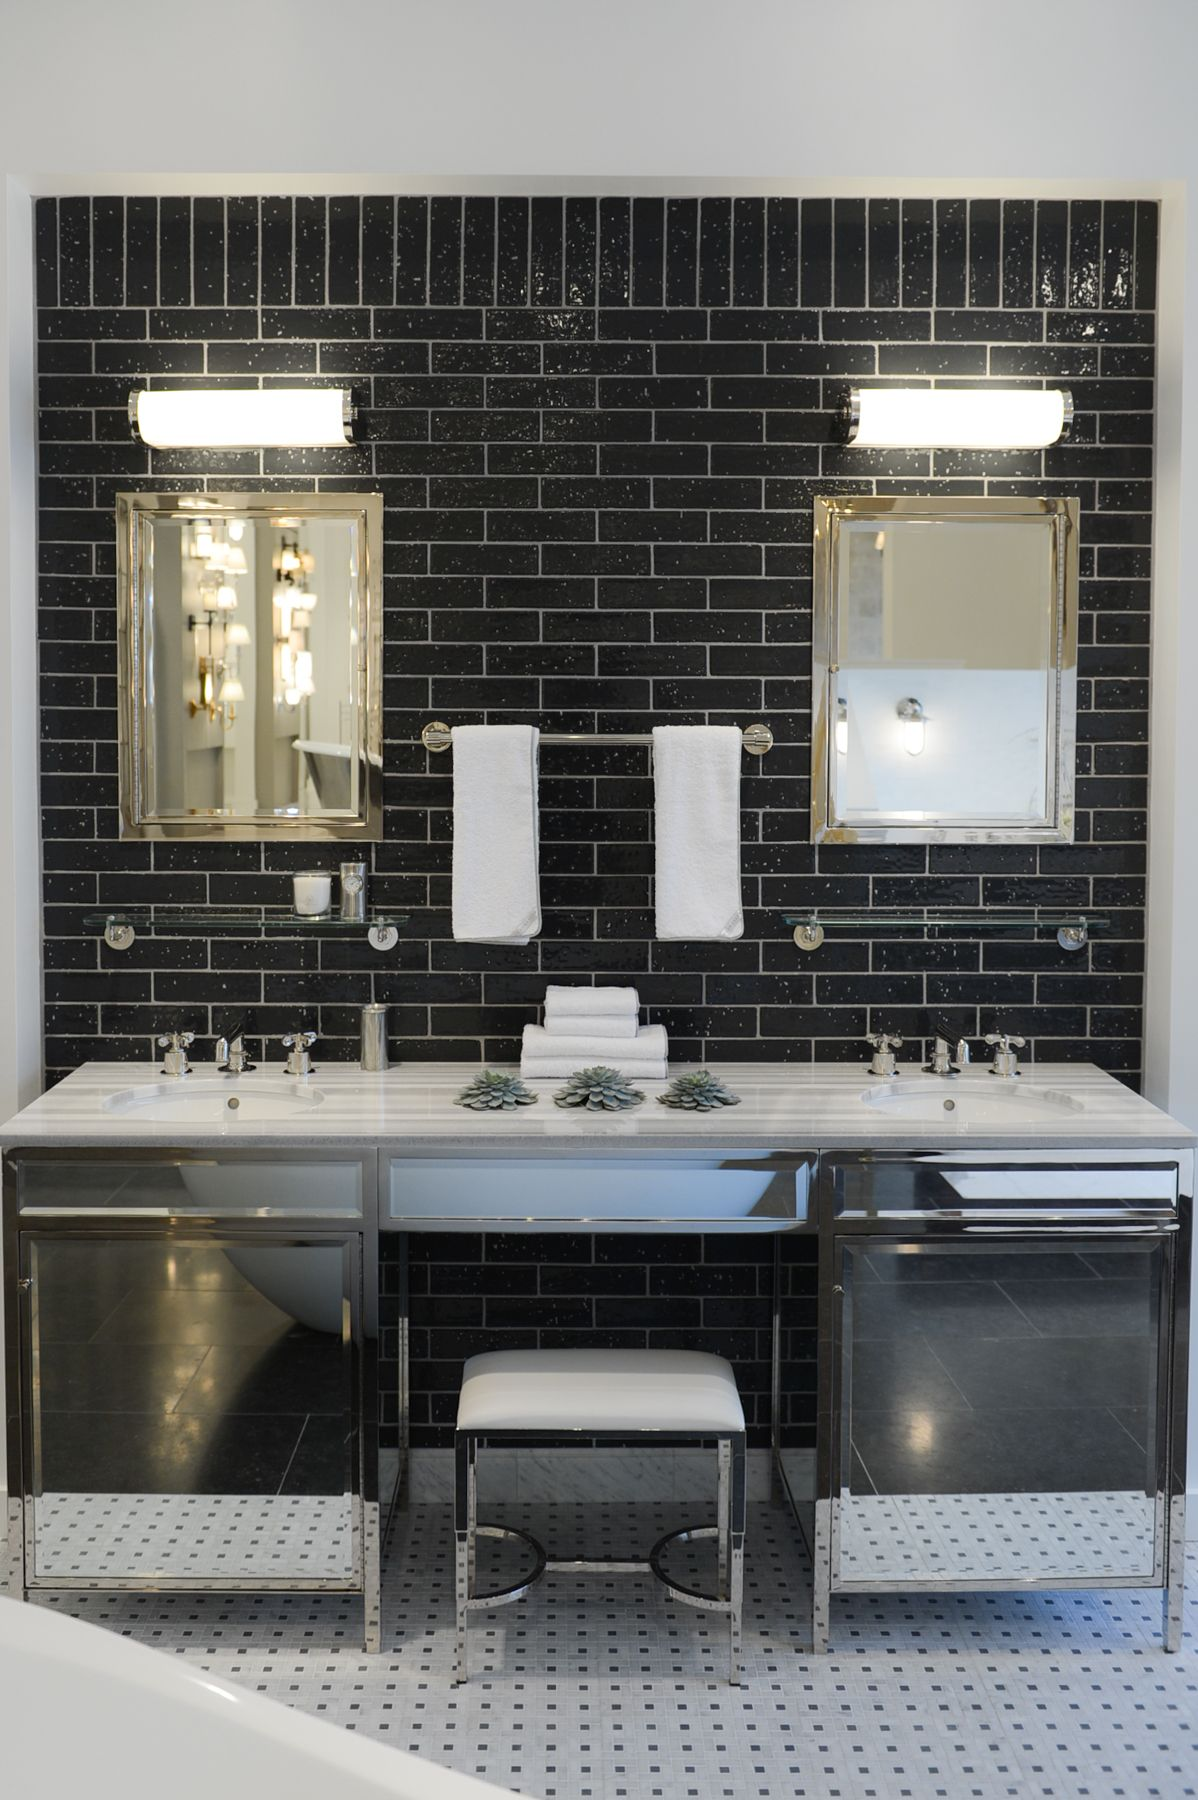 Henry Faucets in the Dallas Showroom | Dallas Showroom | Pinterest ...